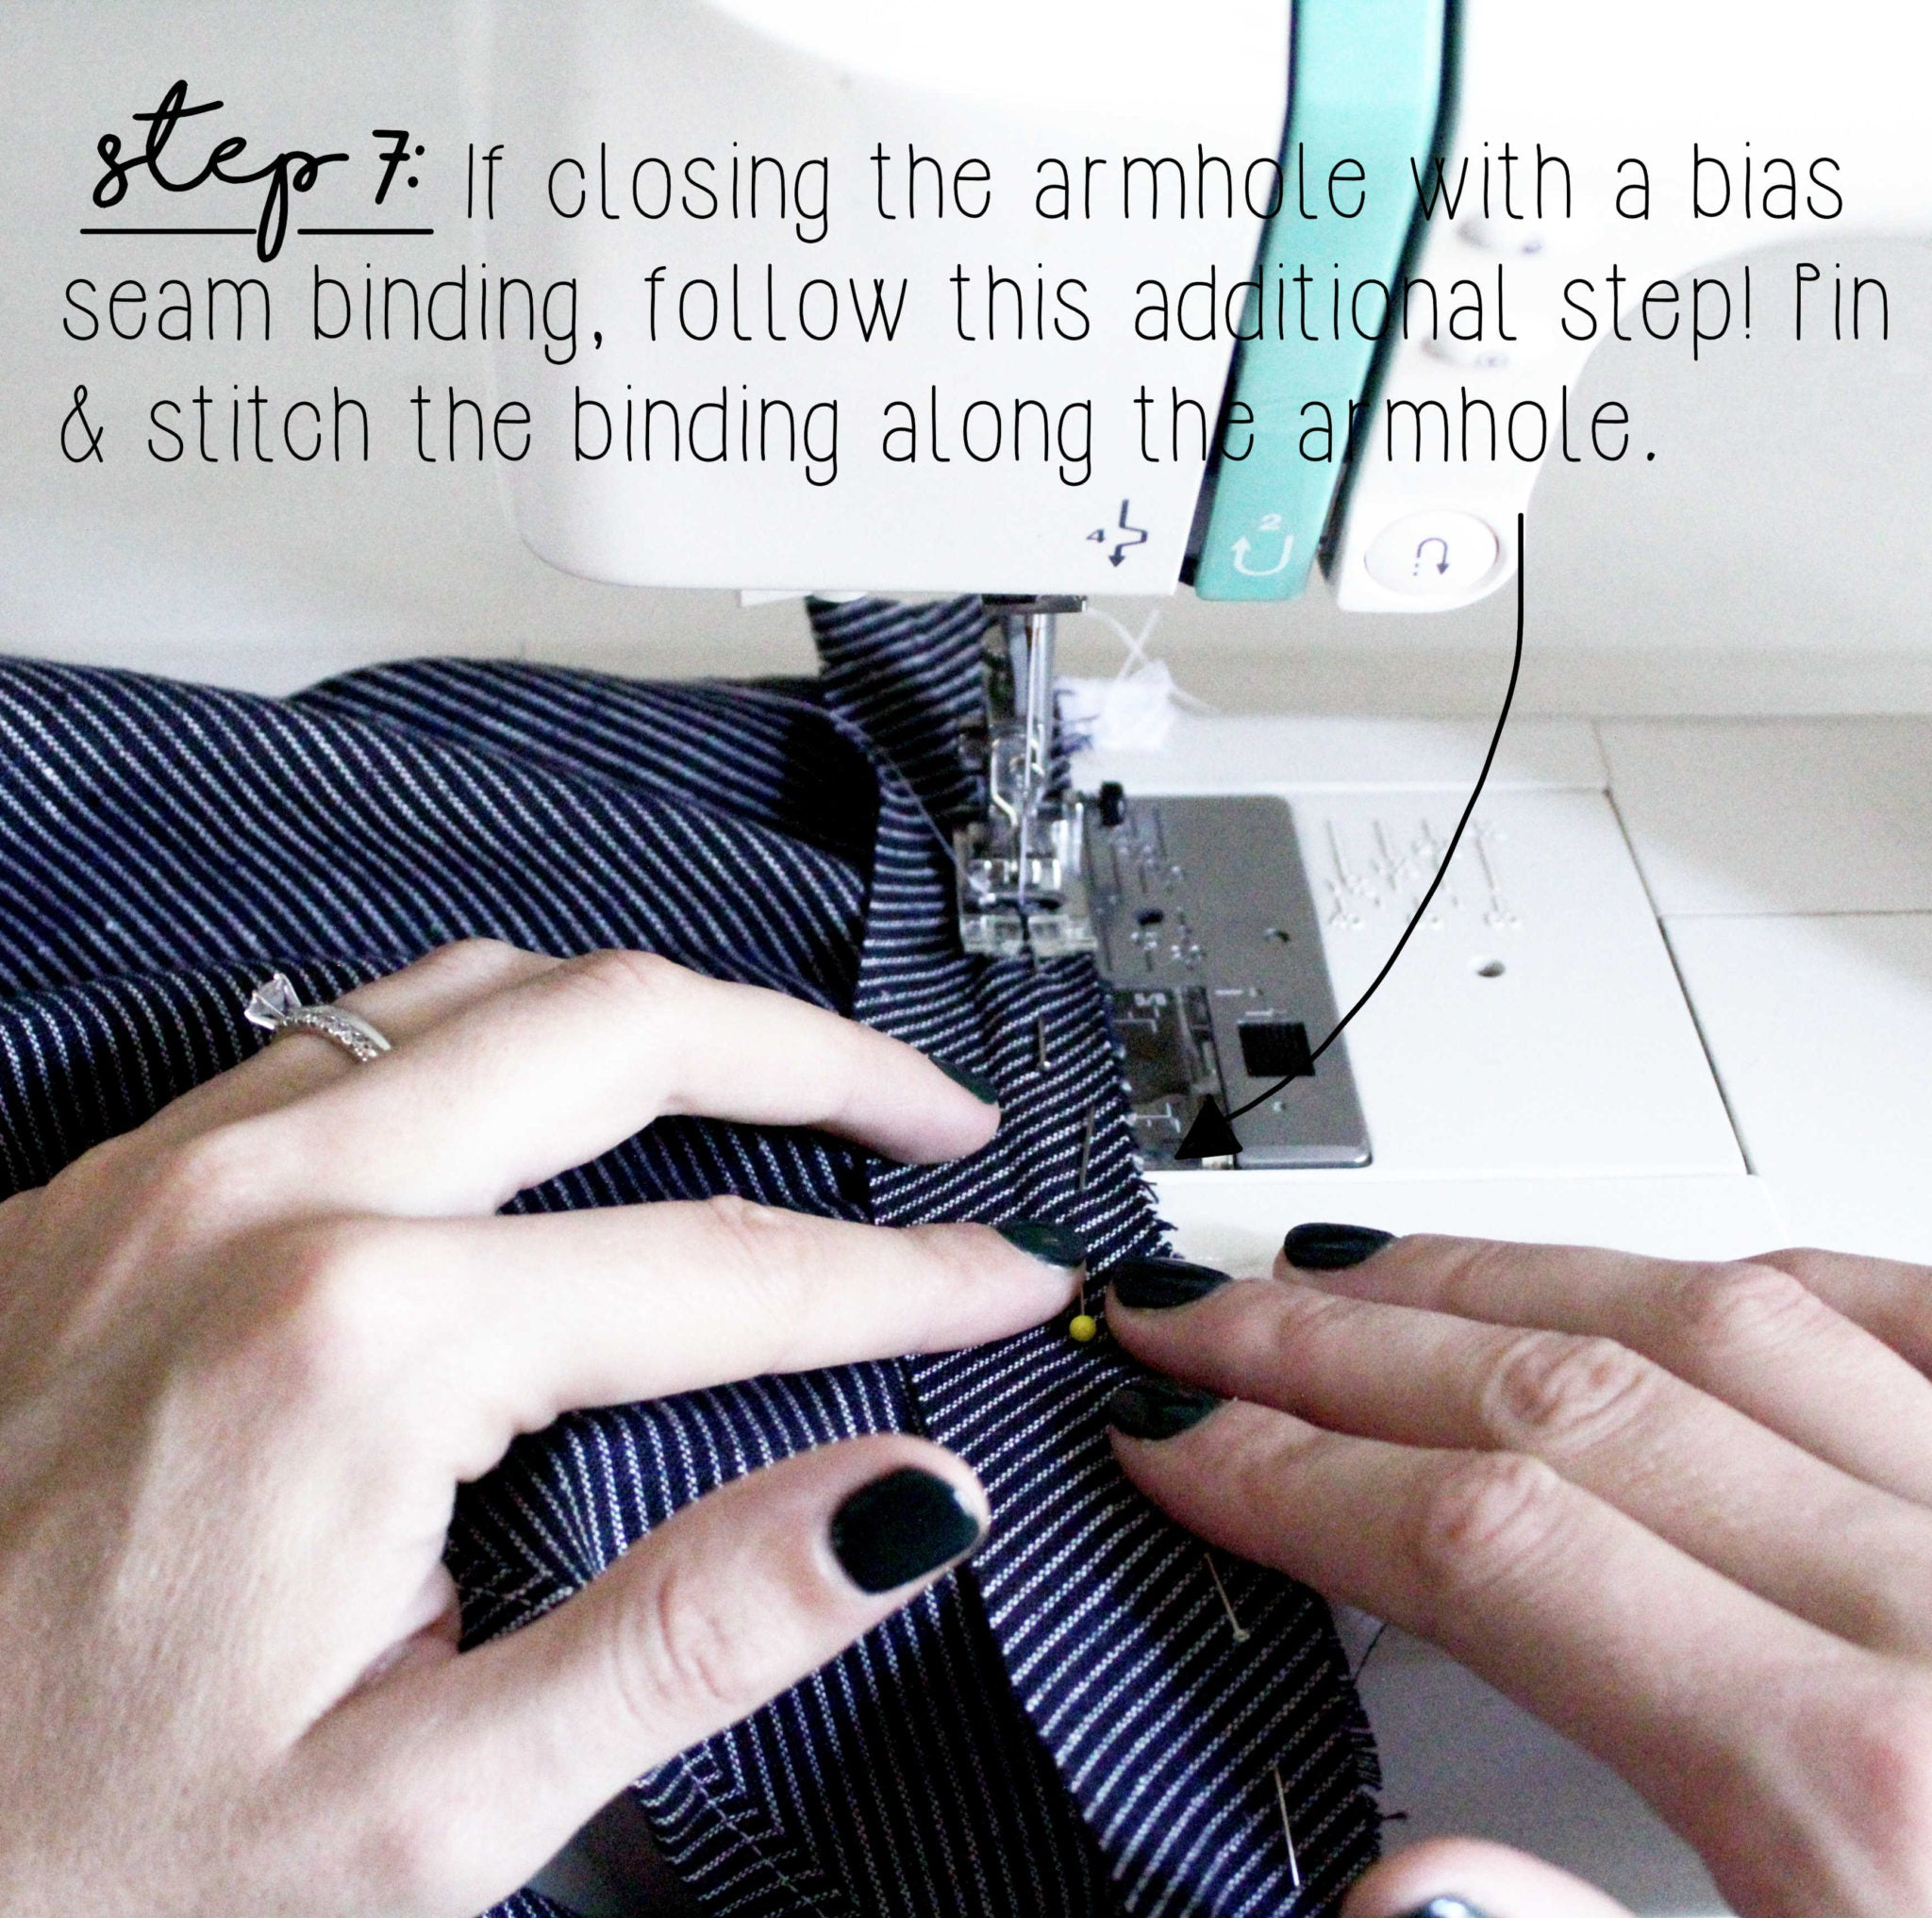 How To Sew An Invisible Zipper Sewing Tutorial: Step 7